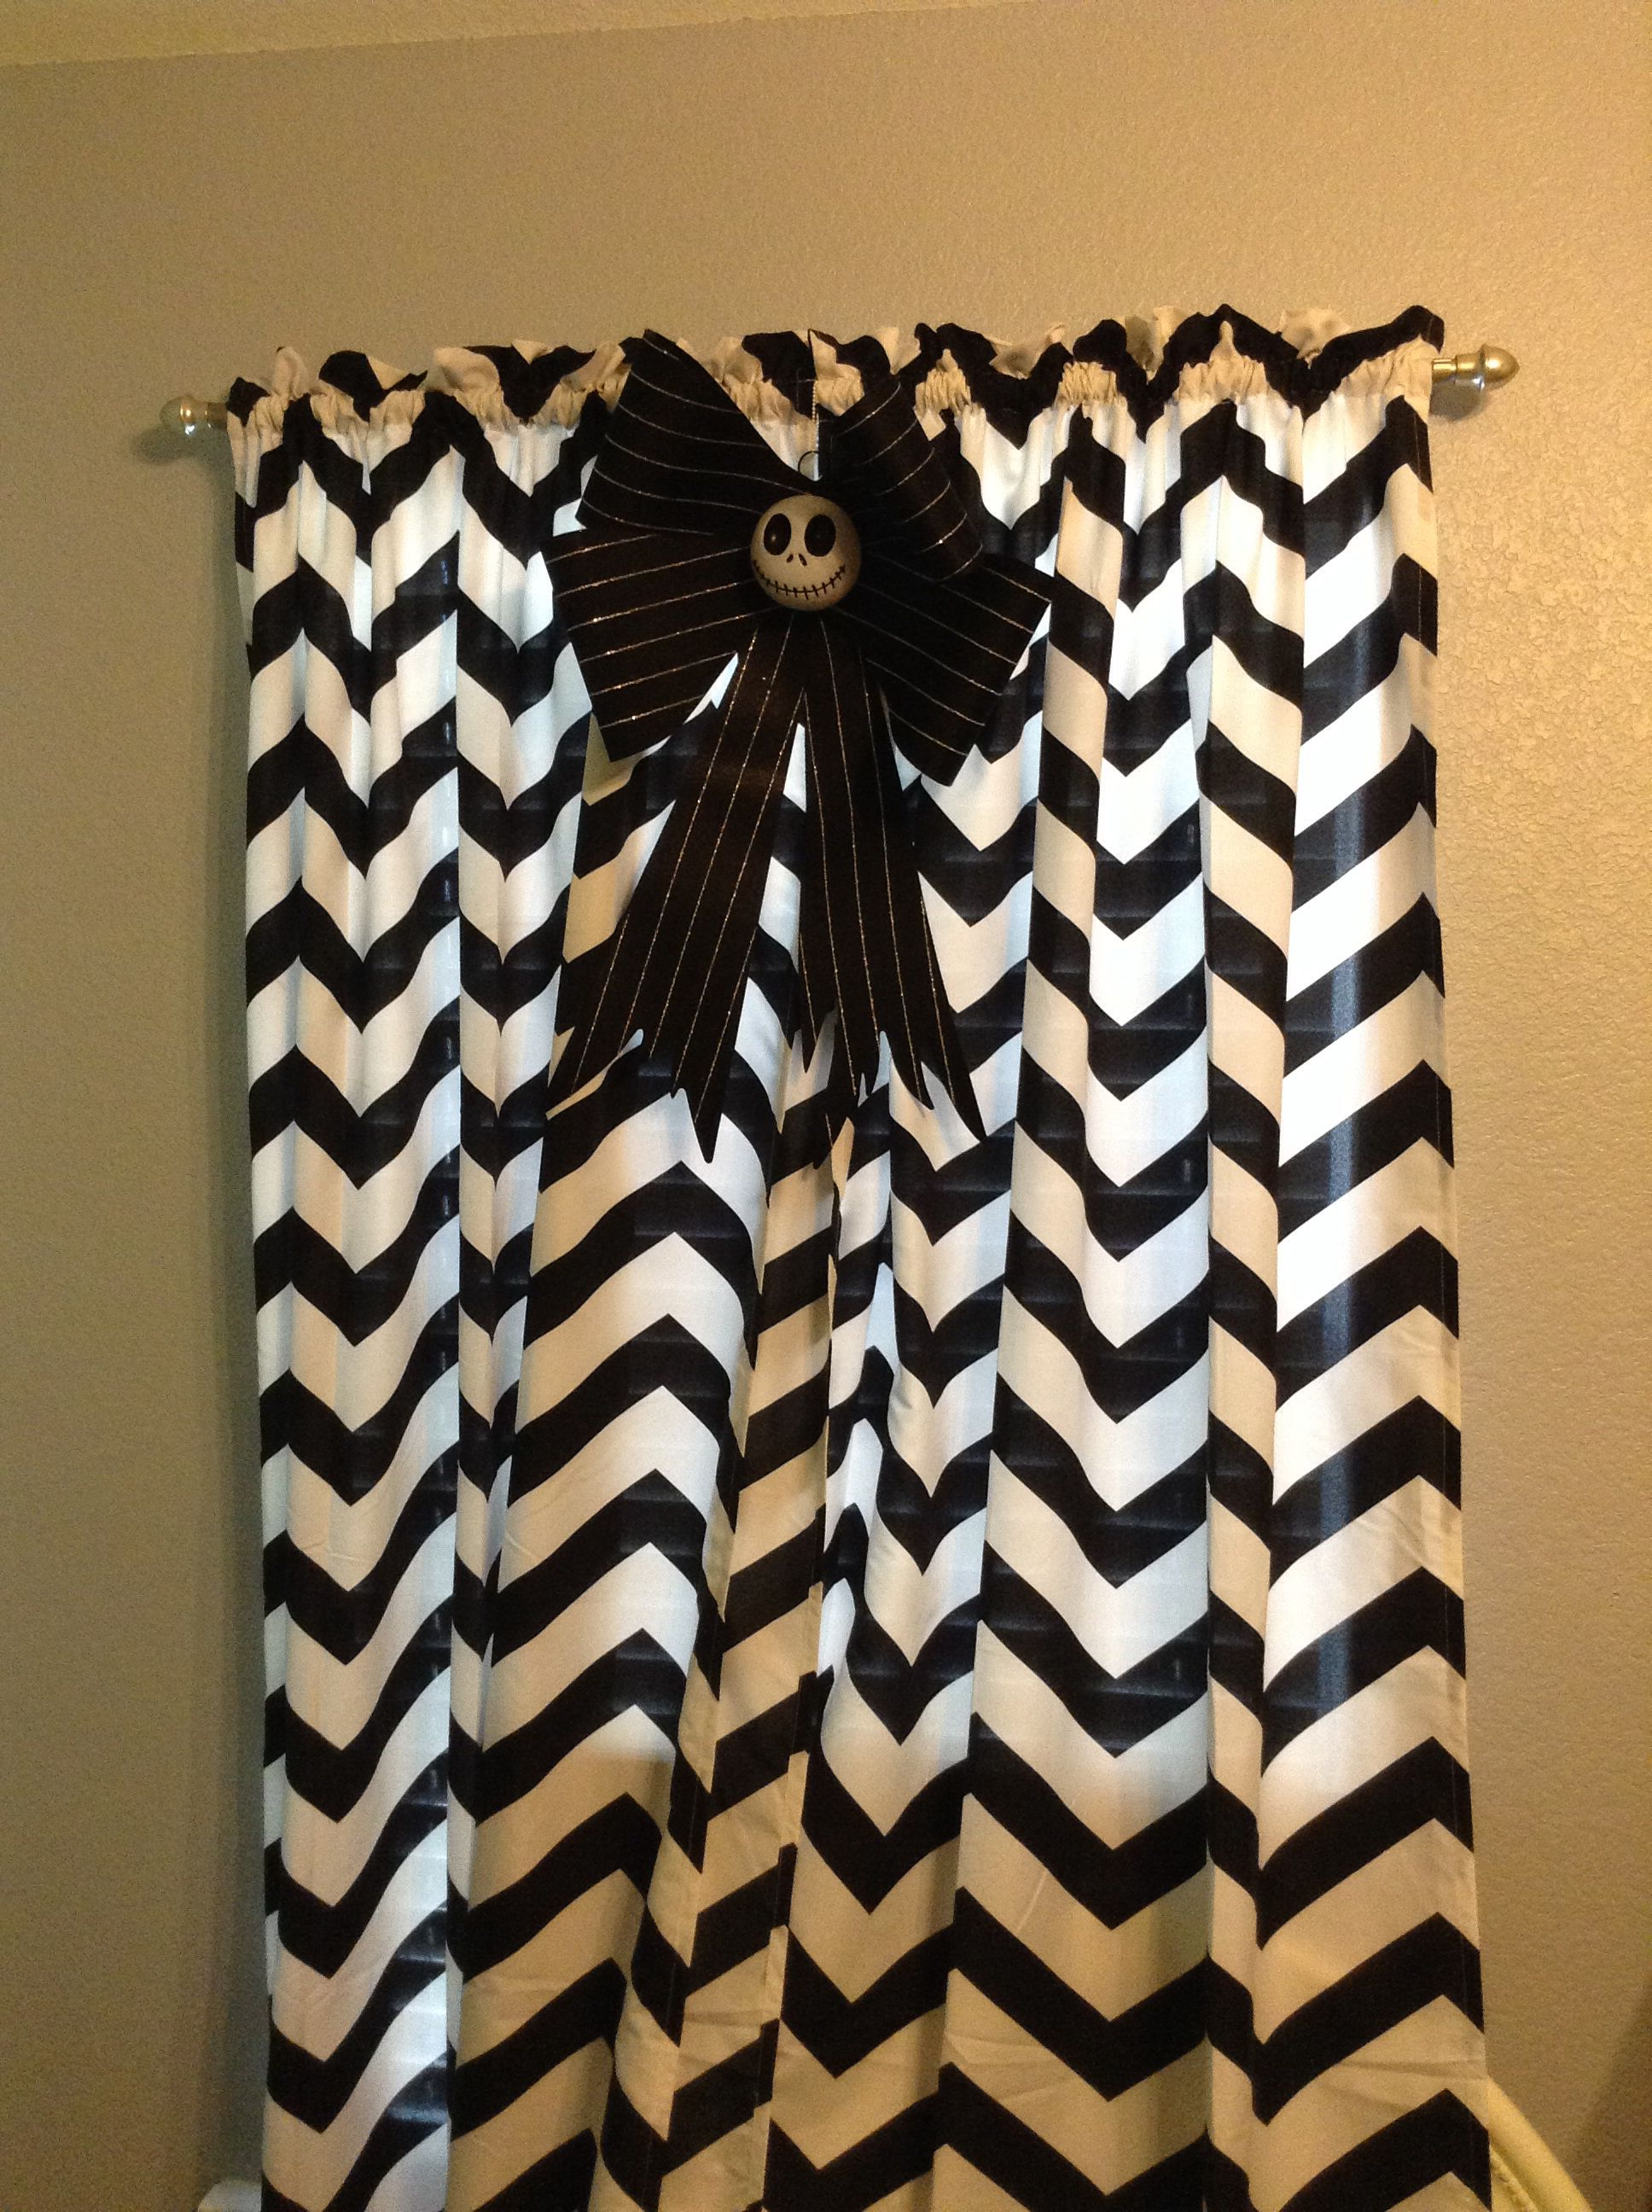 Black and white chevron curtain - Simple Black And White Chevron Curtains With A Jack Skellington Bow In My Nightmare Before Christmas